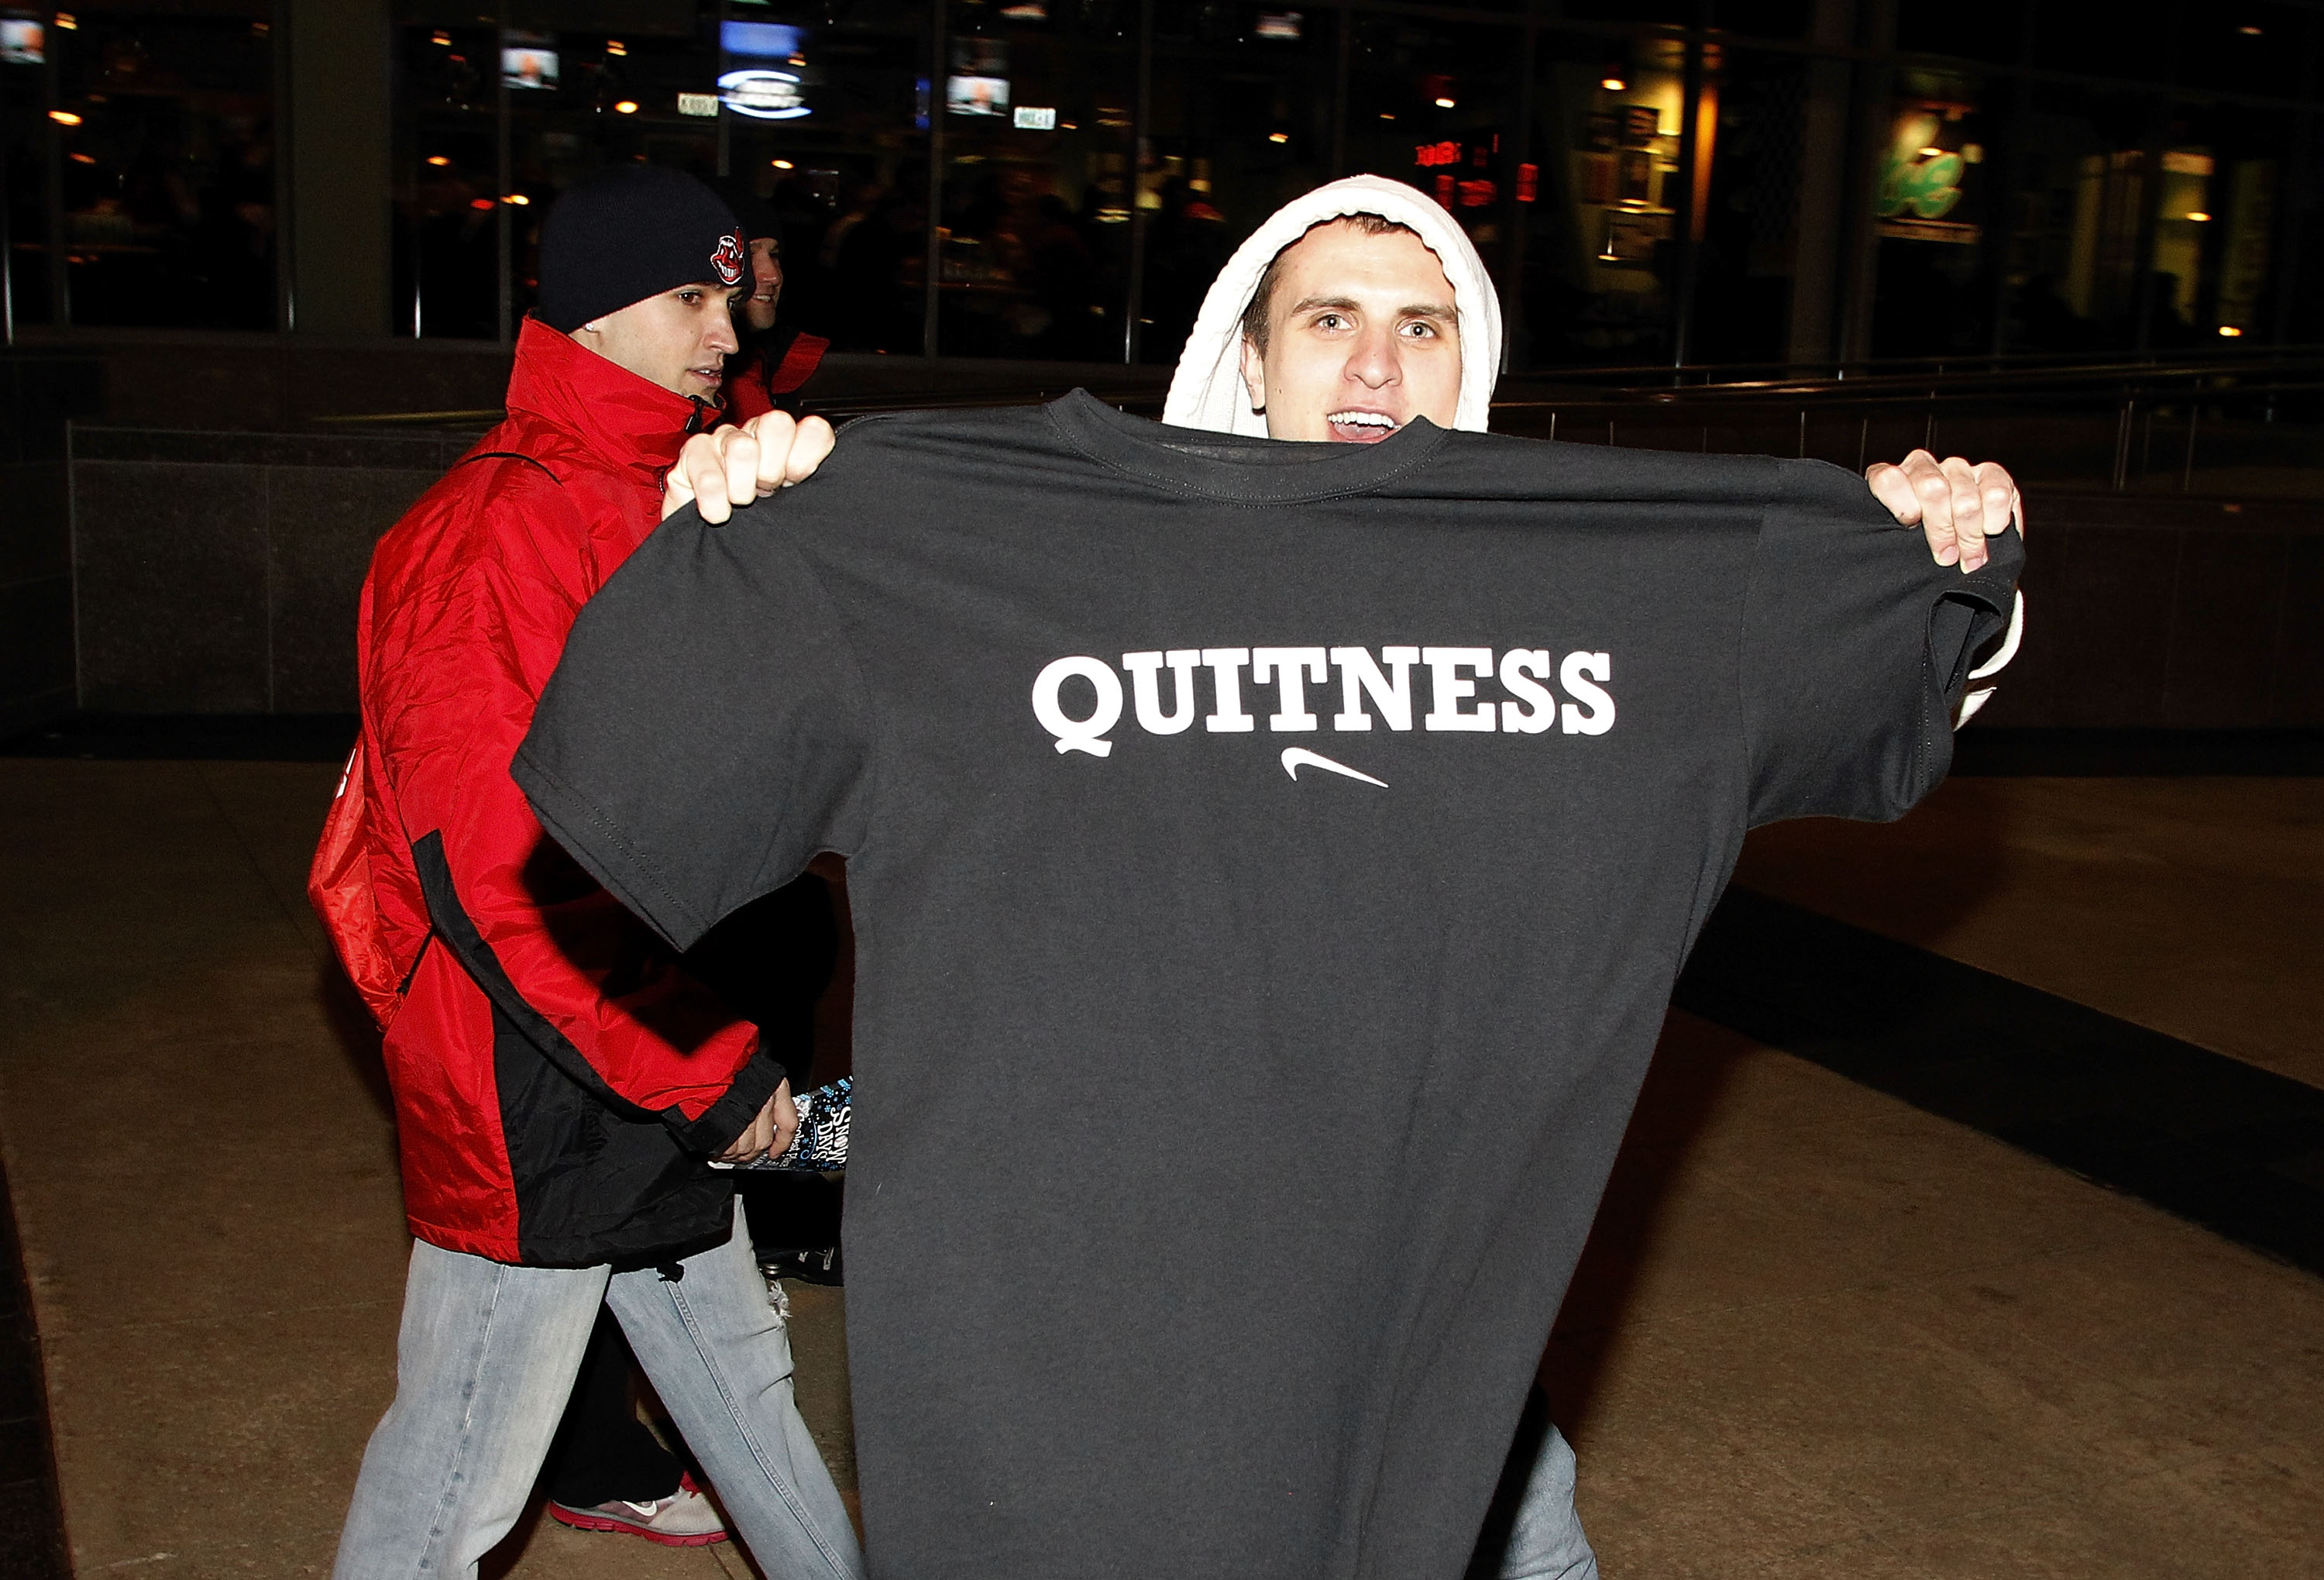 CLEVELAND, OH - DECEMBER 02:  Fans hold up t shirts to show their displeasure with LeBron James prior to the Cleveland Cavaliers playing the Miami Heat at Quicken Loans Arena on December 2, 2010 in Cleveland, Ohio. NOTE TO USER: User expressly acknowledge